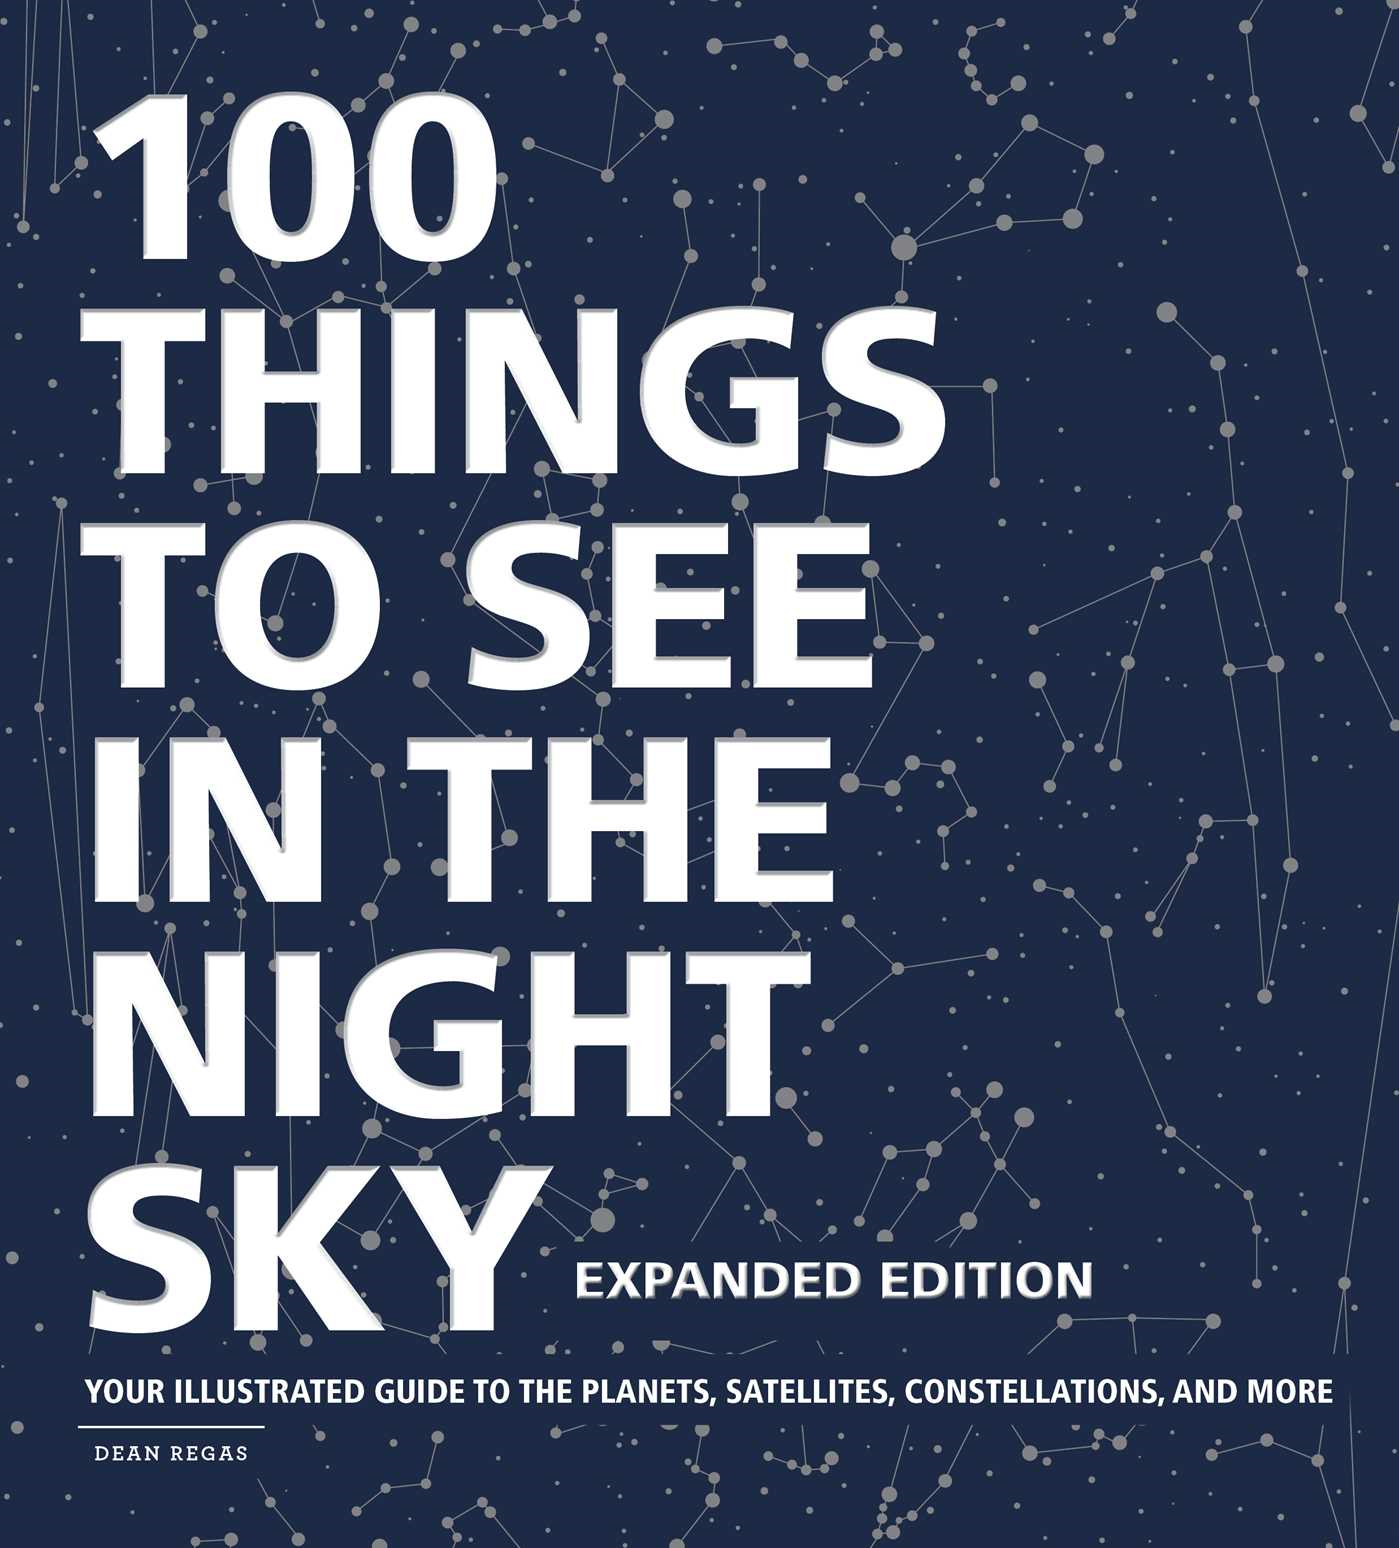 100 Things to See in the Night Sky, Expanded Edition